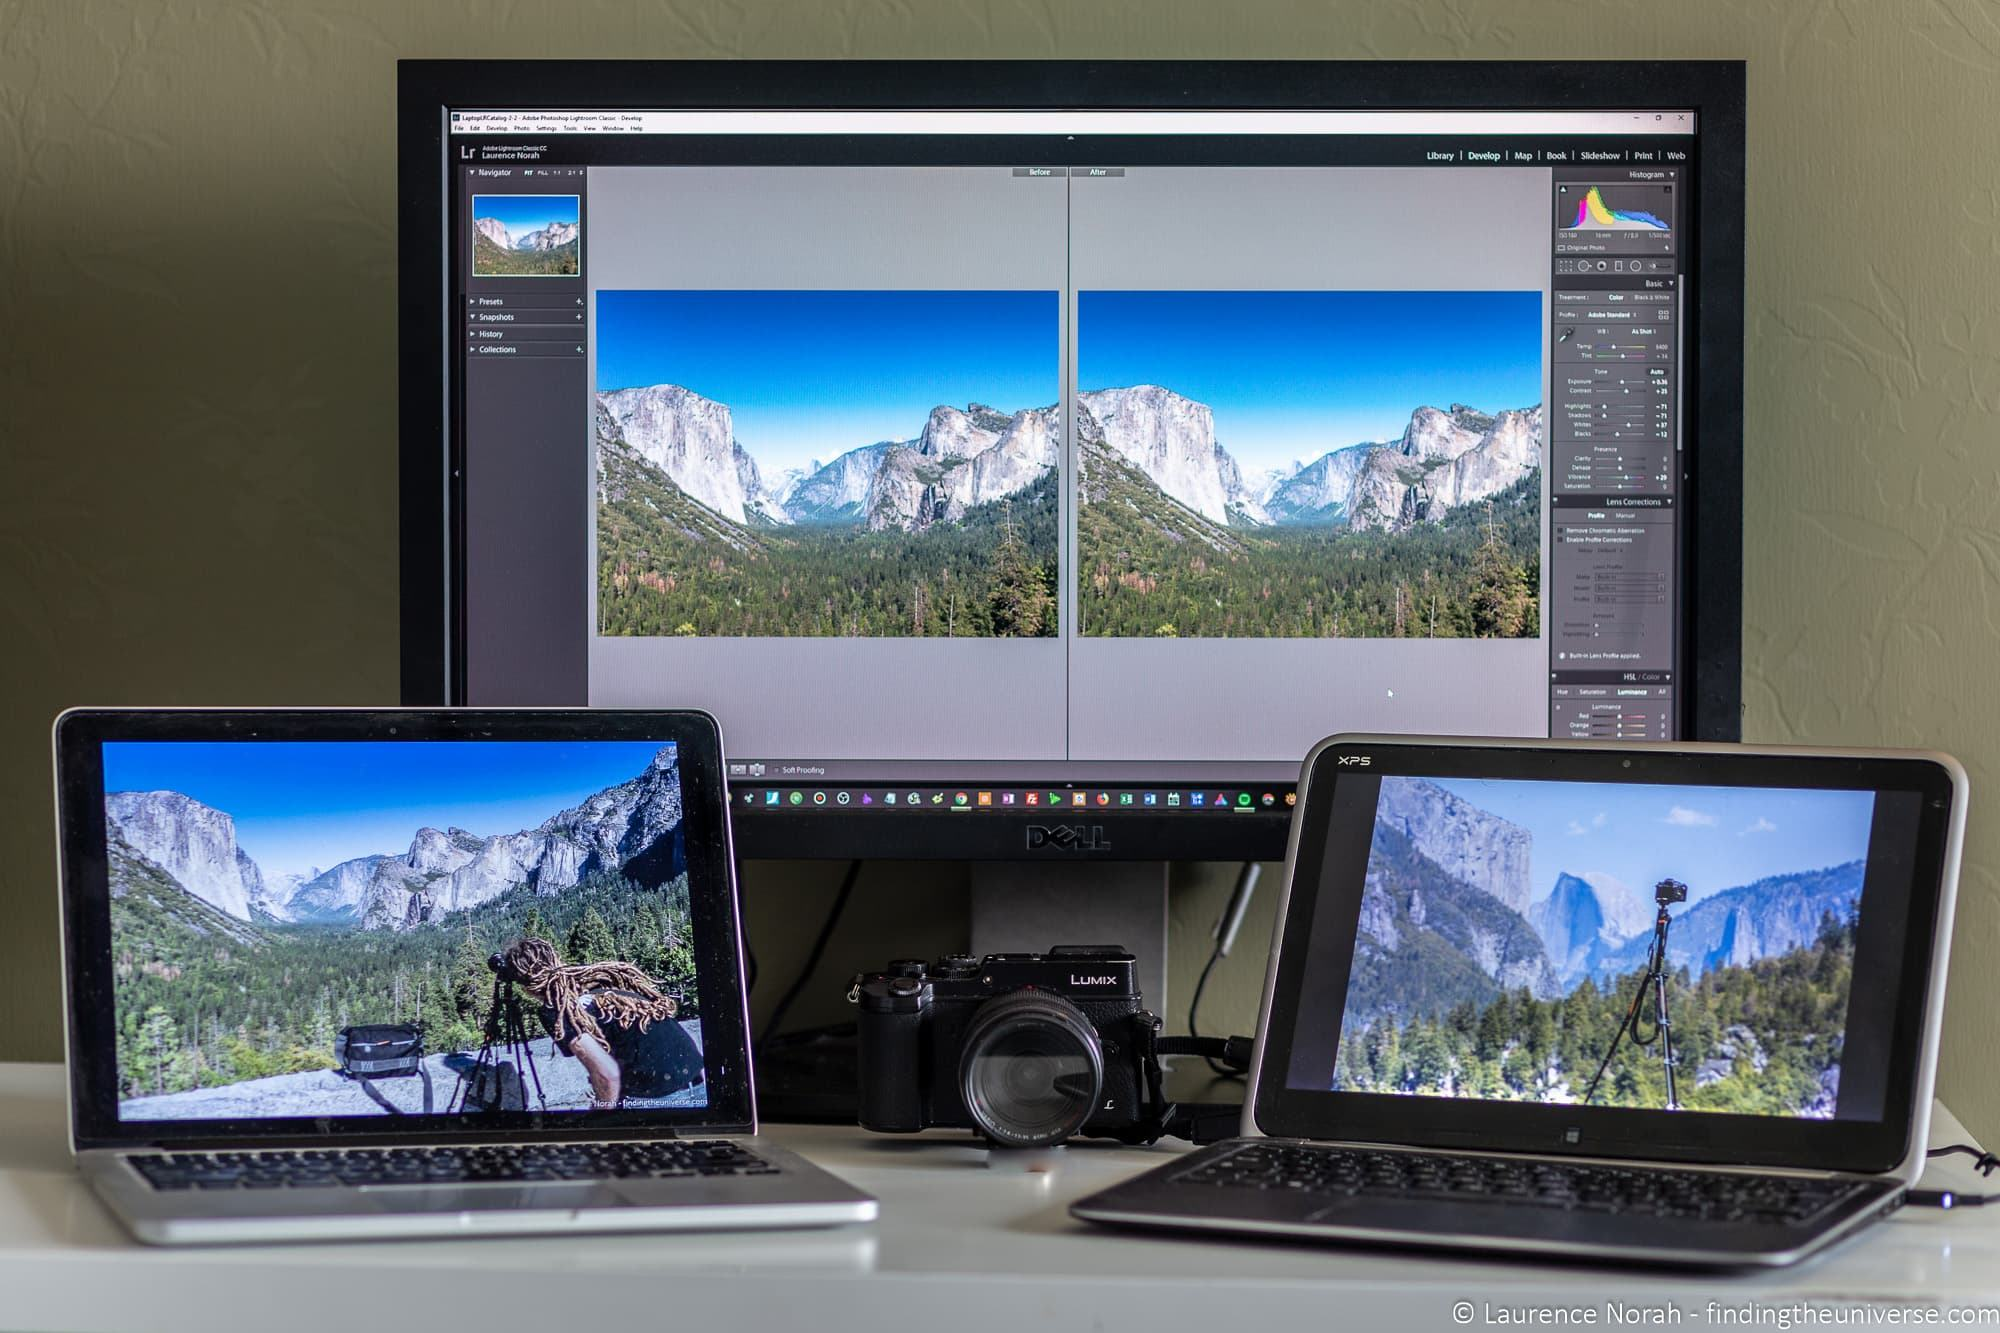 Best Laptop for Photo Editing in 2019 - Finding the Universe